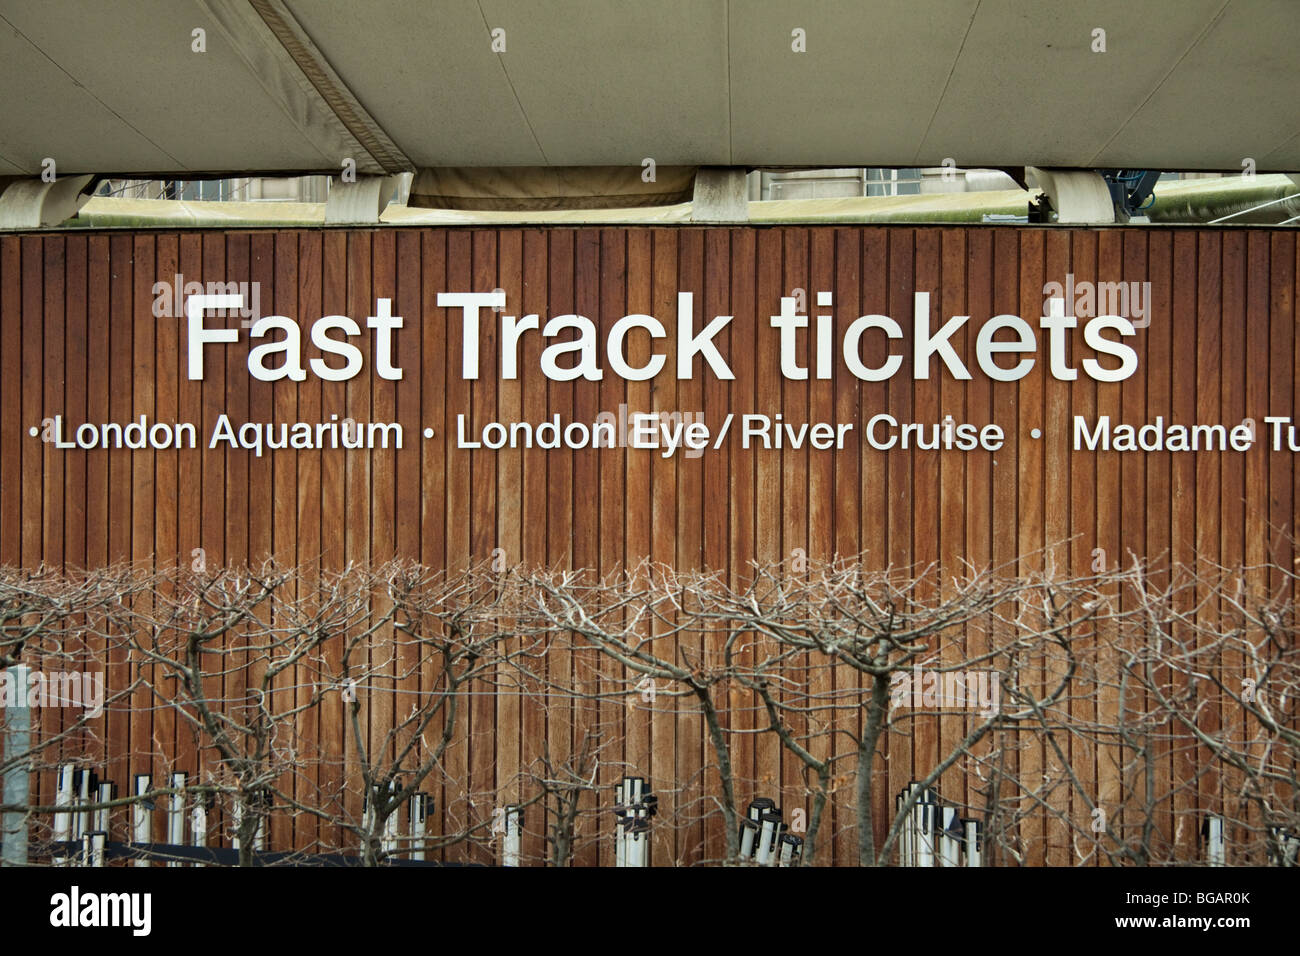 Fast track ticket booth in London, England, selling tickets for the London Aquarium, London Eye, Madame Tussauds. - Stock Image